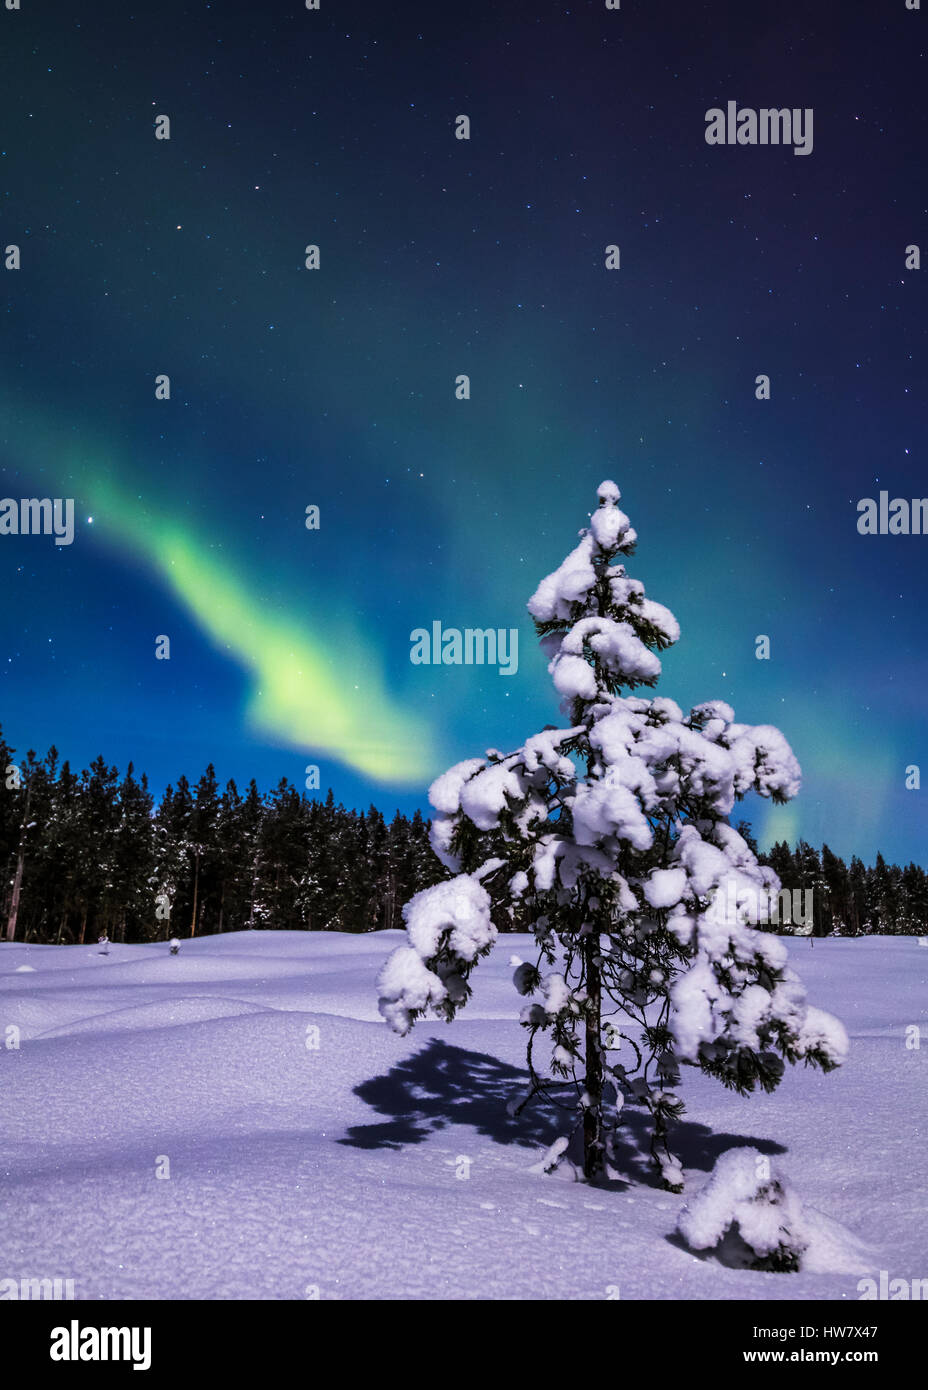 Snowy night in Finland - Stock Image